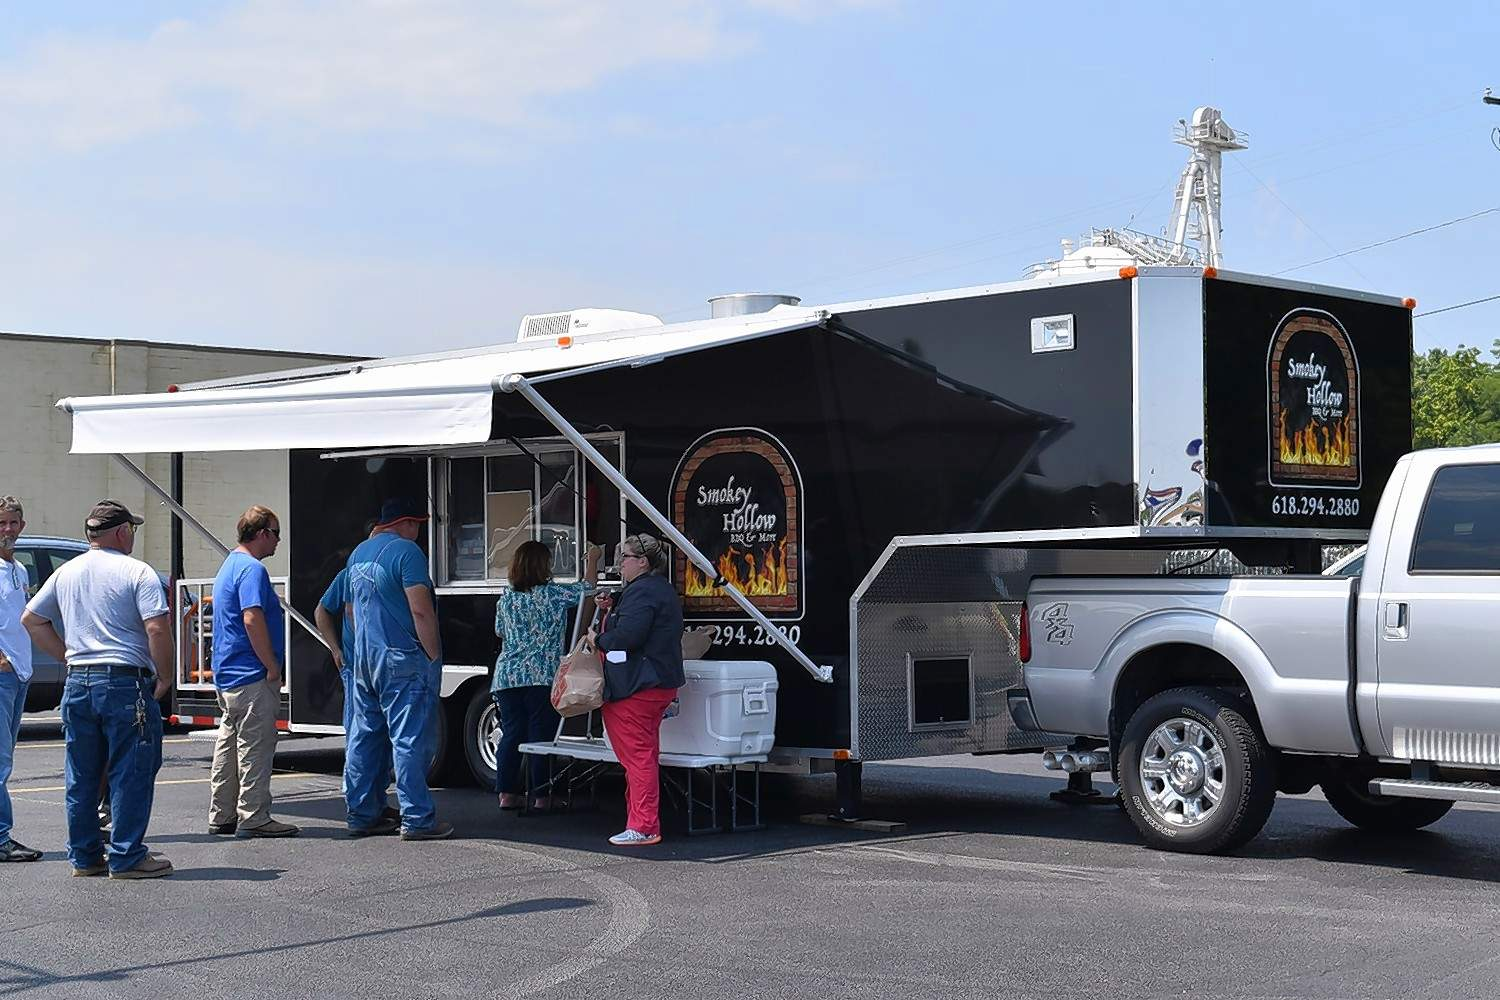 The Woolards' barbecue truck has featured a steady stream of customers since this first day of selling barbecue in the parking lot of Parker Plaza.